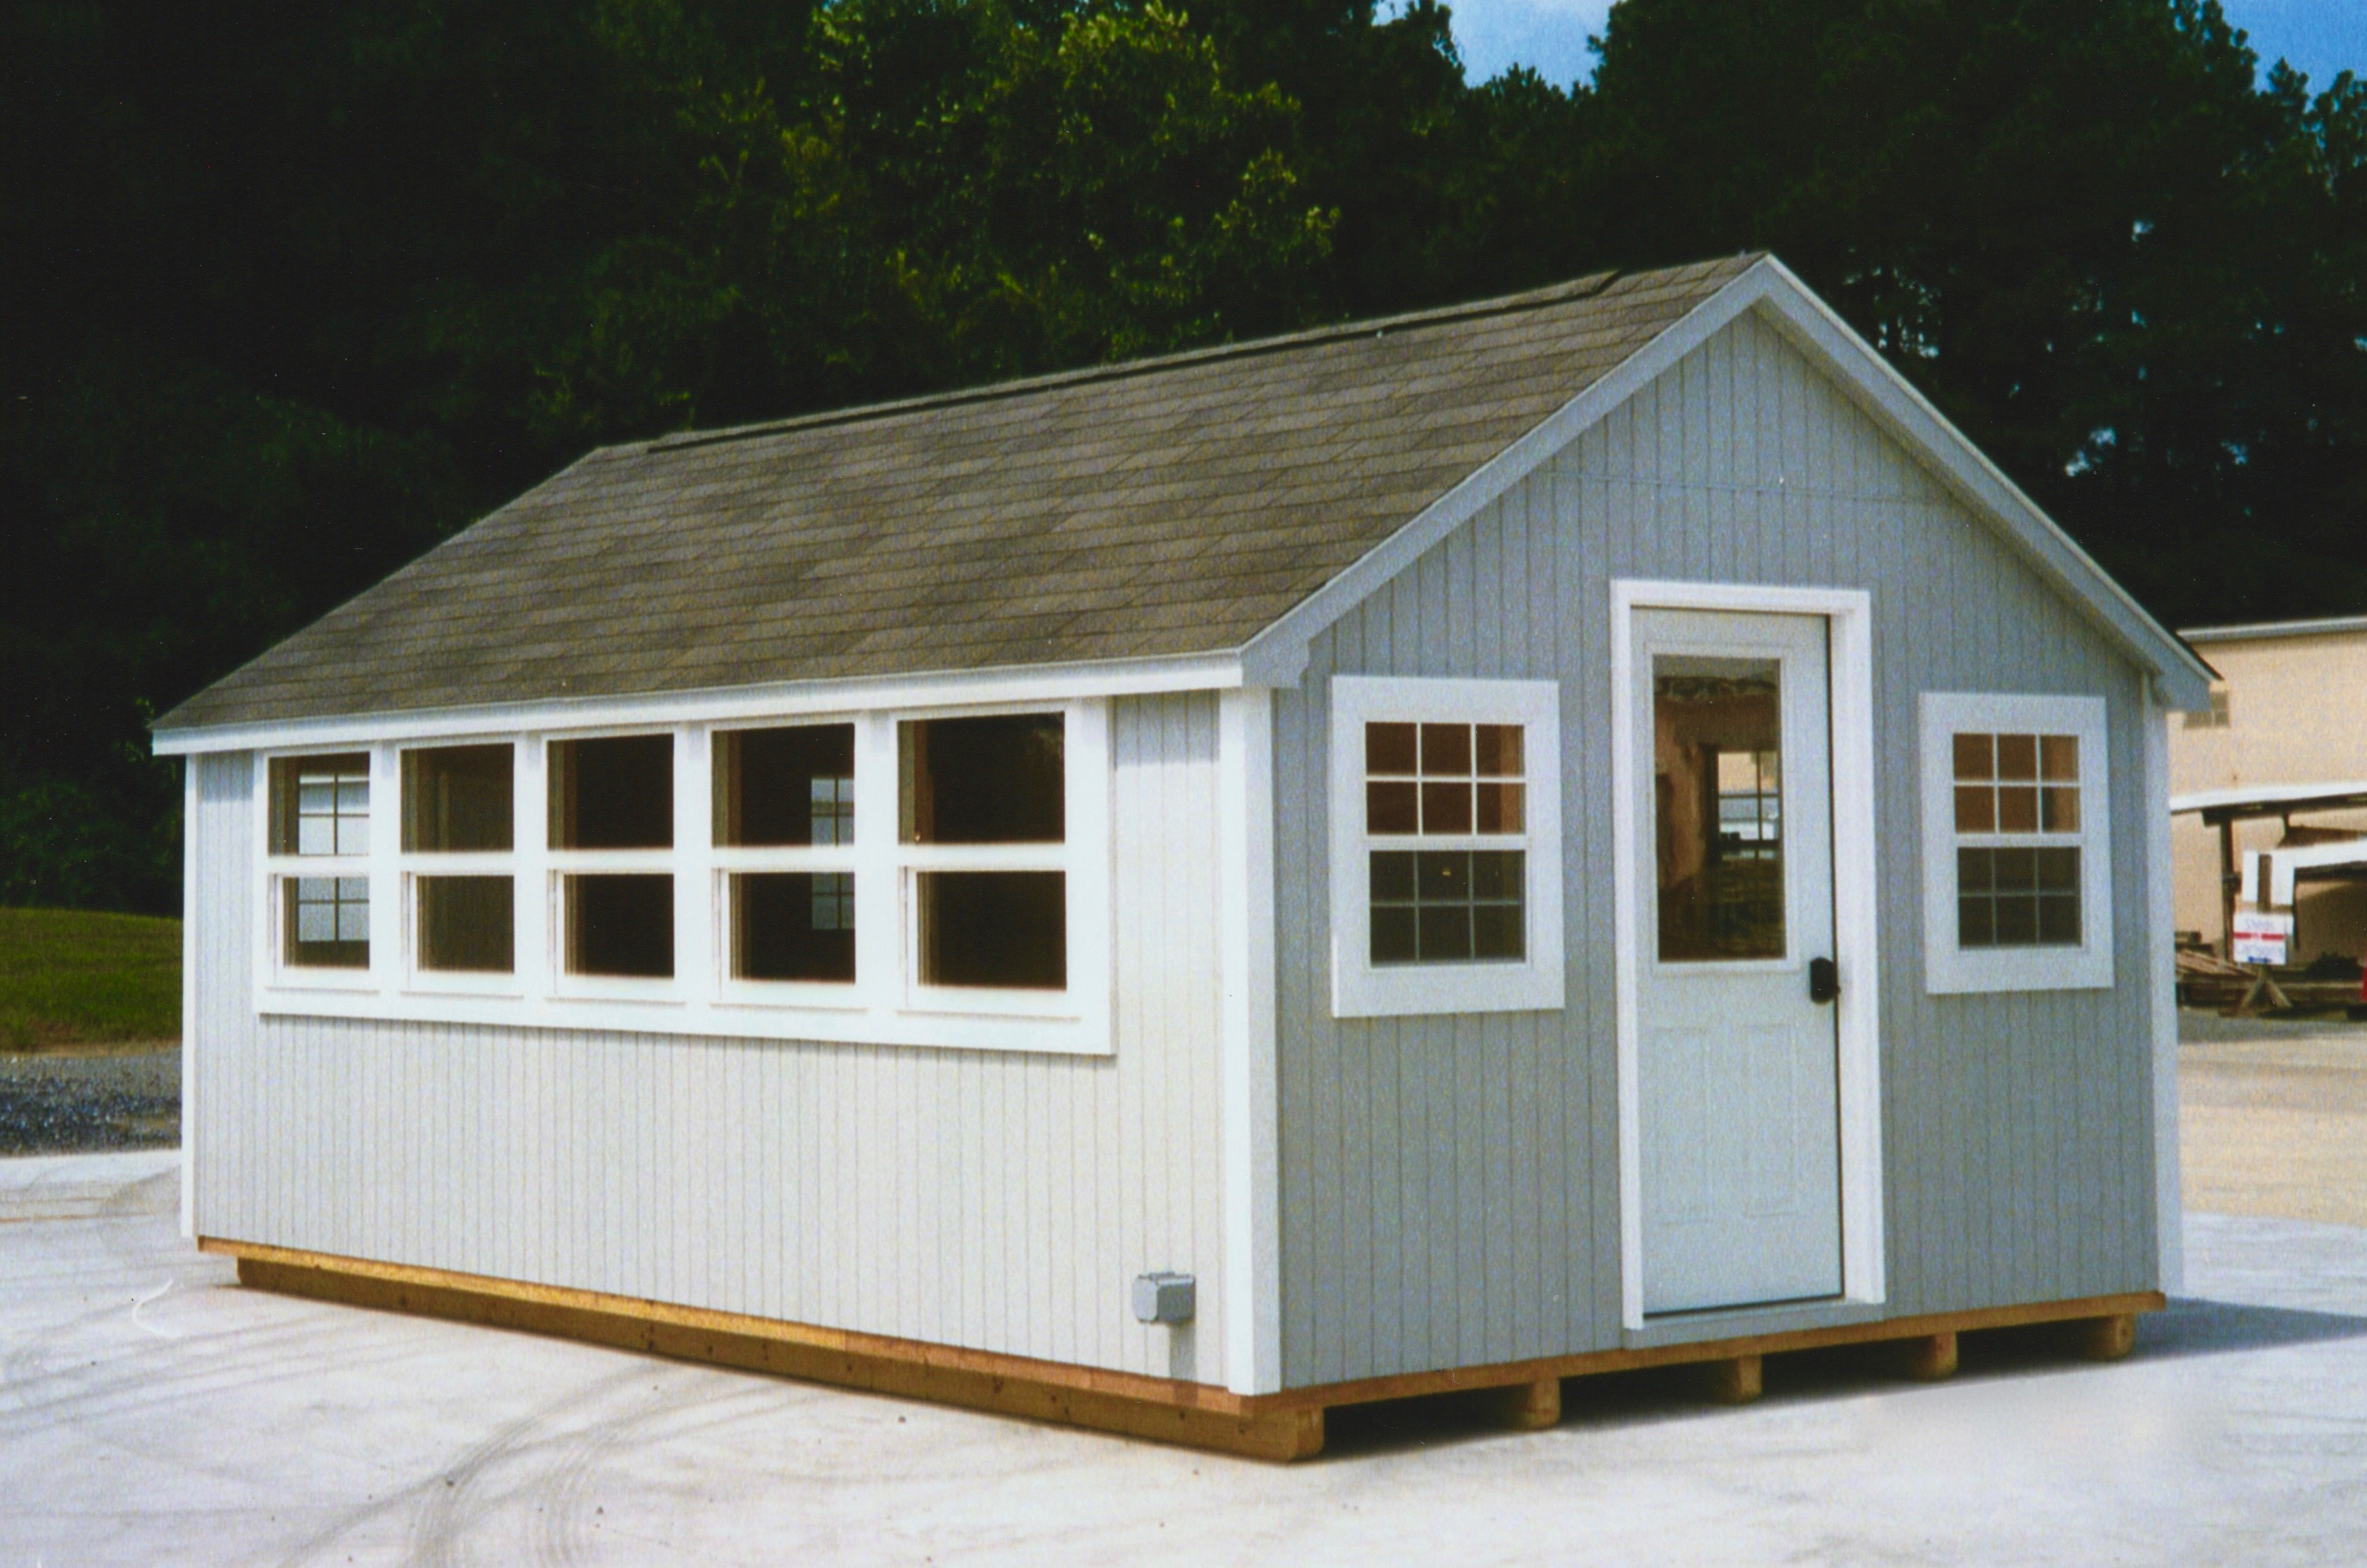 shed roofing storage gambrel time home portable buildings tool sheds and building